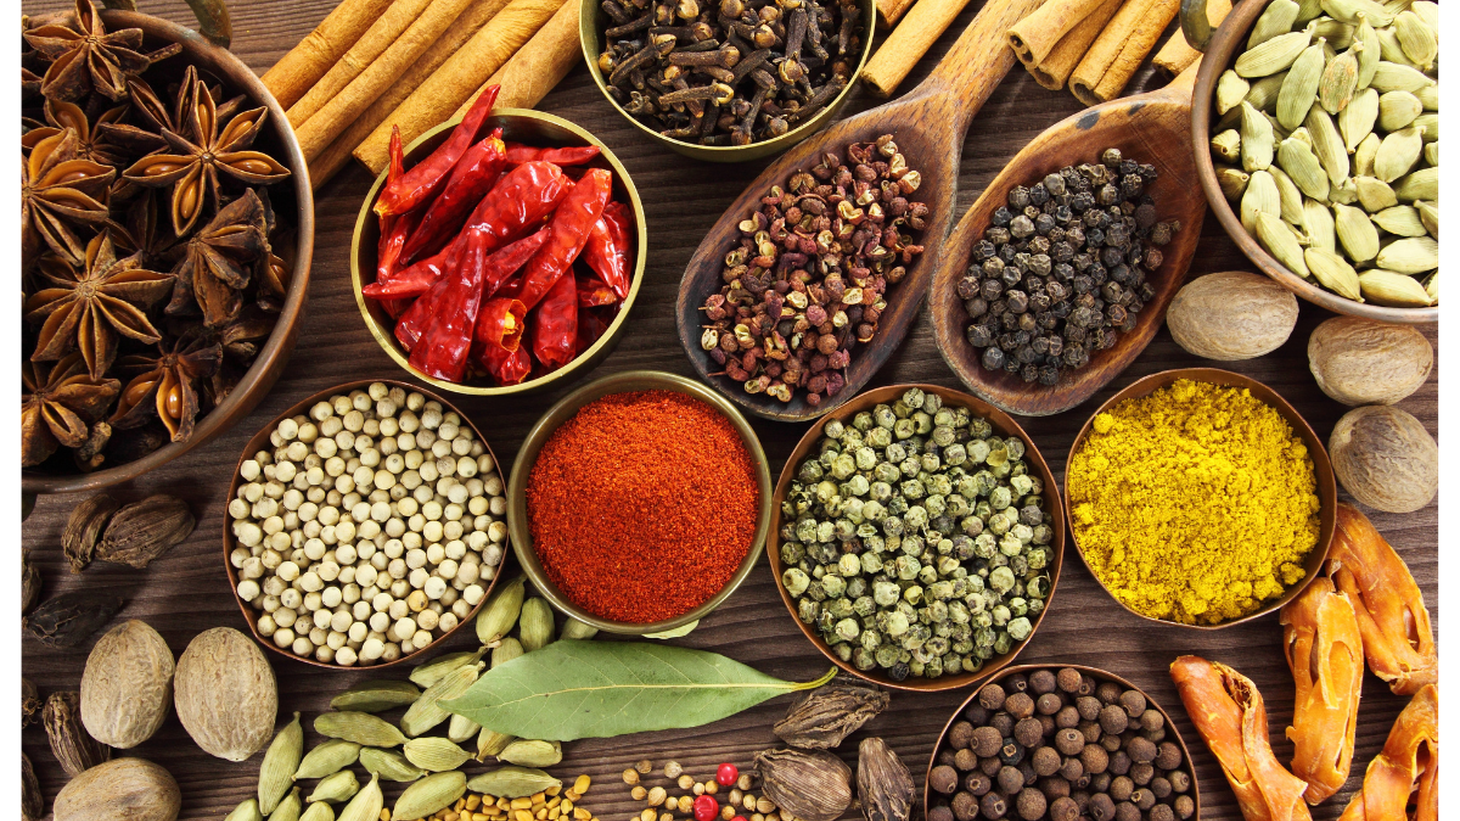 Led by Dr. David Delgado Shorter, UCLA's The Archive of Healing is a digital database that draws on folklorists and anthropologists, documenting traditions and rituals of wellness, including the use of many spices.